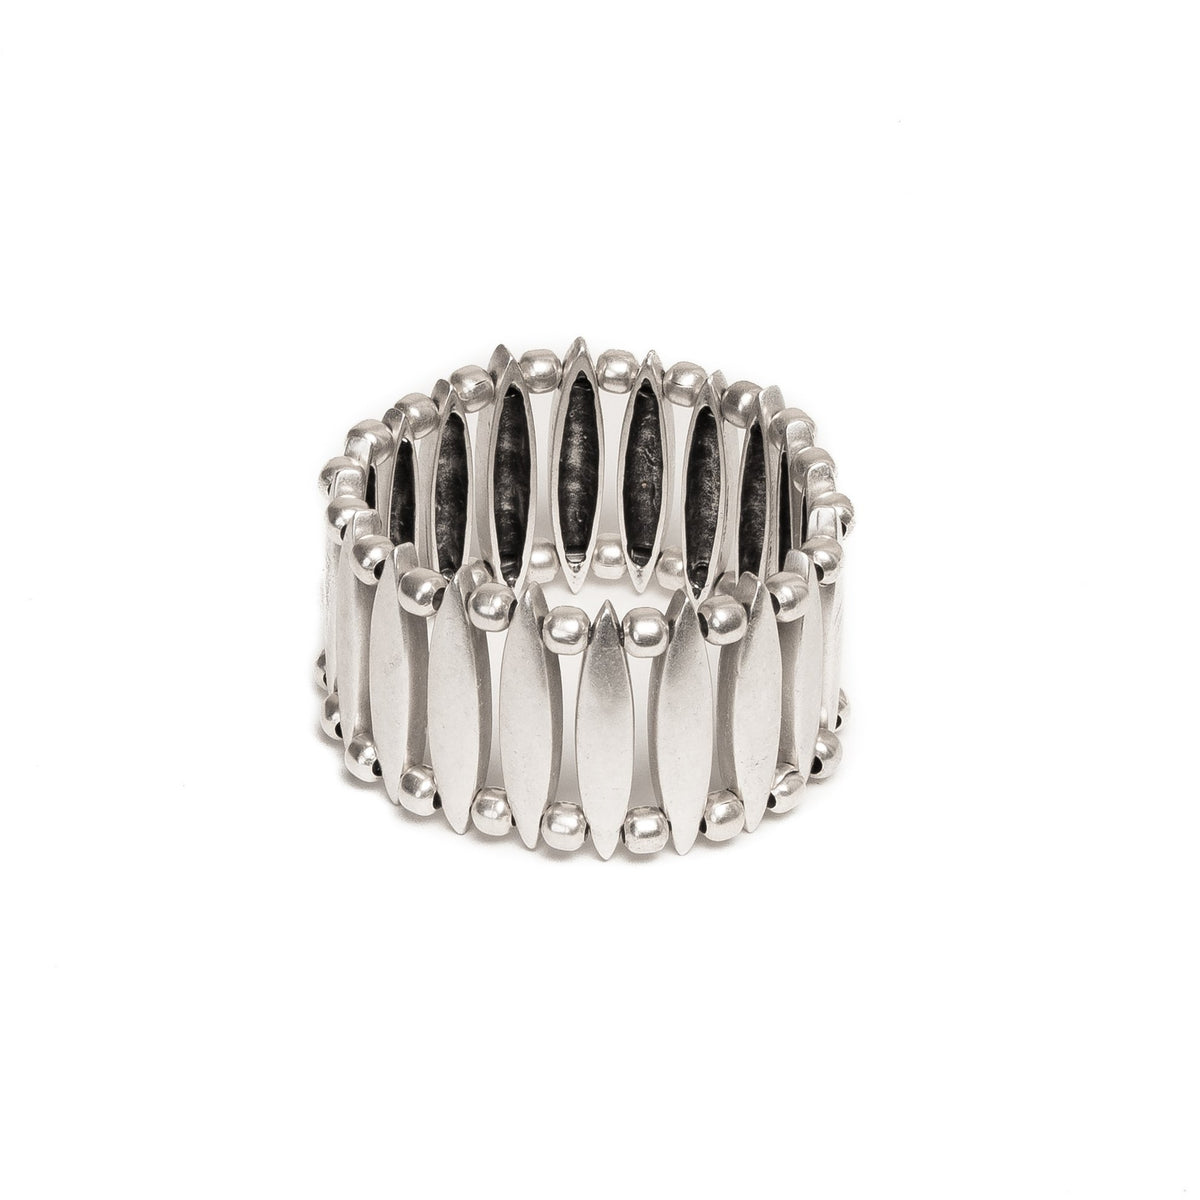 Ball & Diamond Cuff Bracelet | Bracelet - The Naughty Shrew